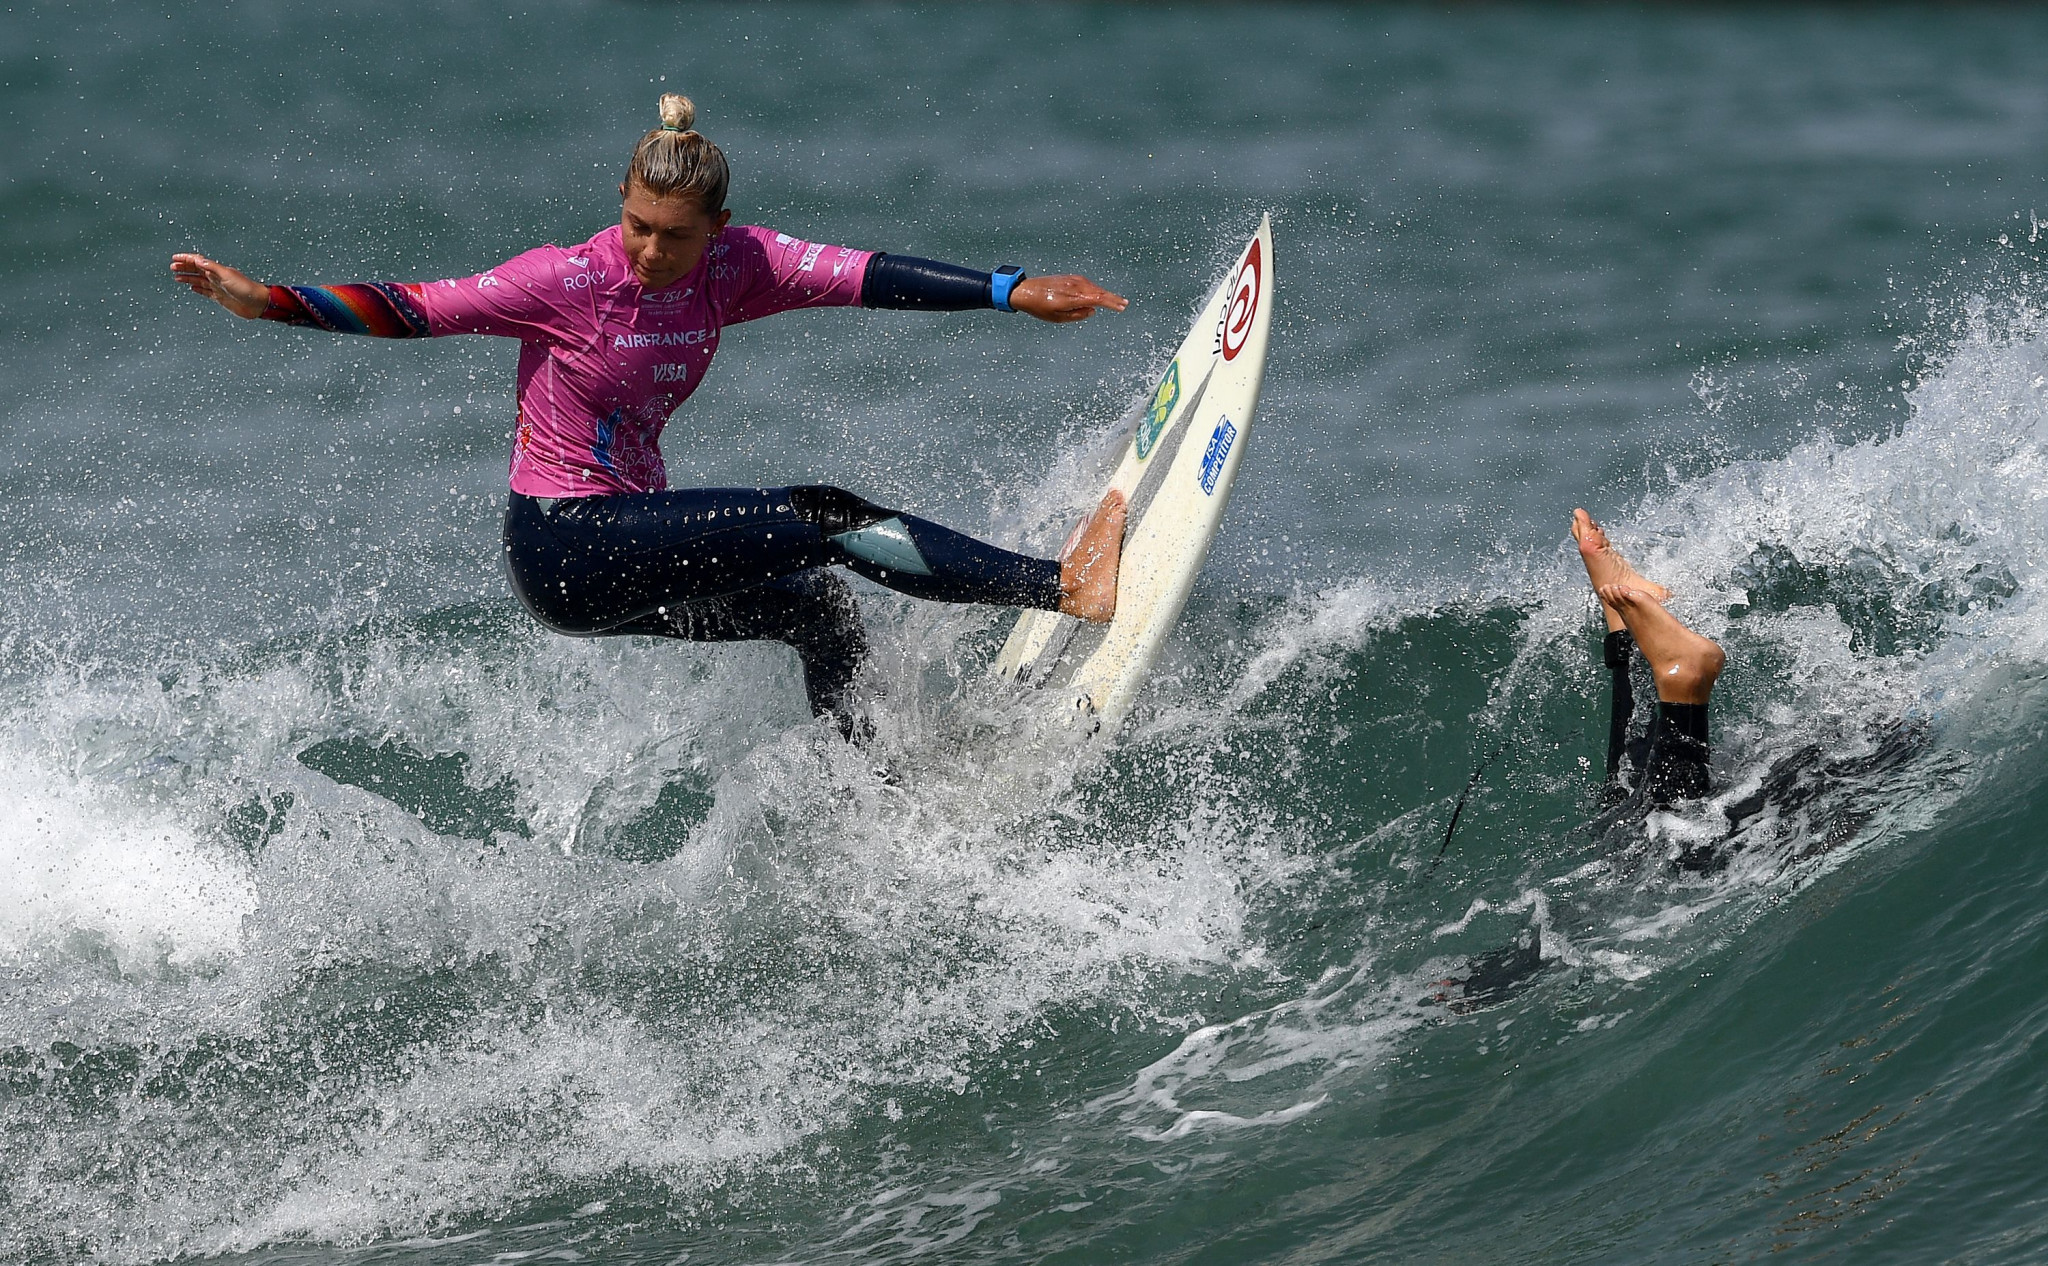 Roas' first senior World Championship was at the 2017 World Surfing Games in Biarritz, where she placed ninth ©Getty Images